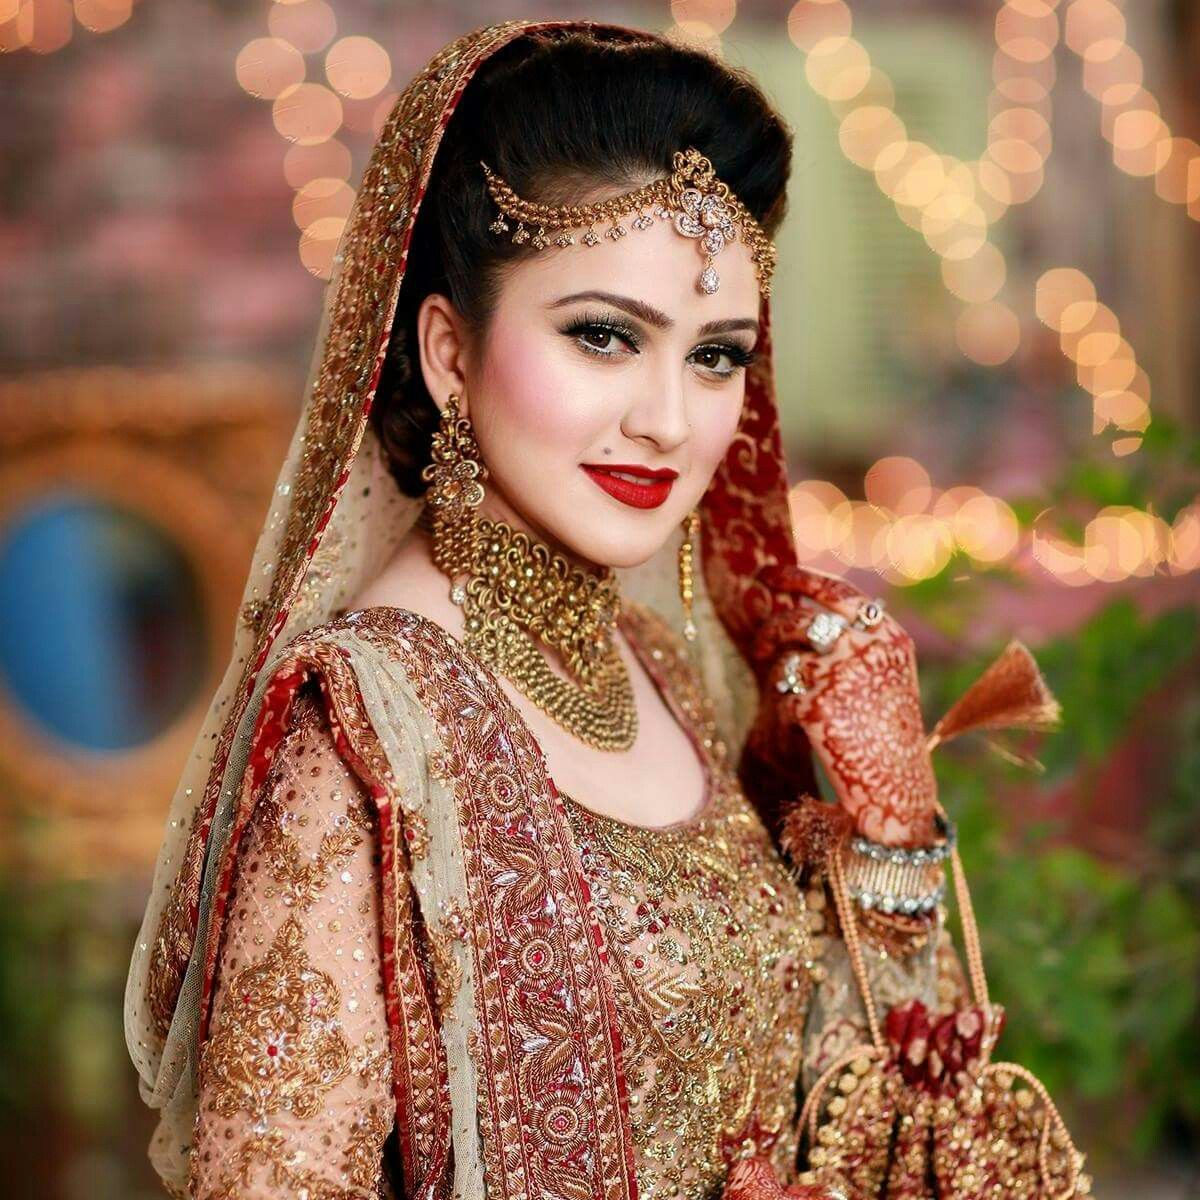 Pin by Shazia Choudhry on Brides Bridal jewellery design